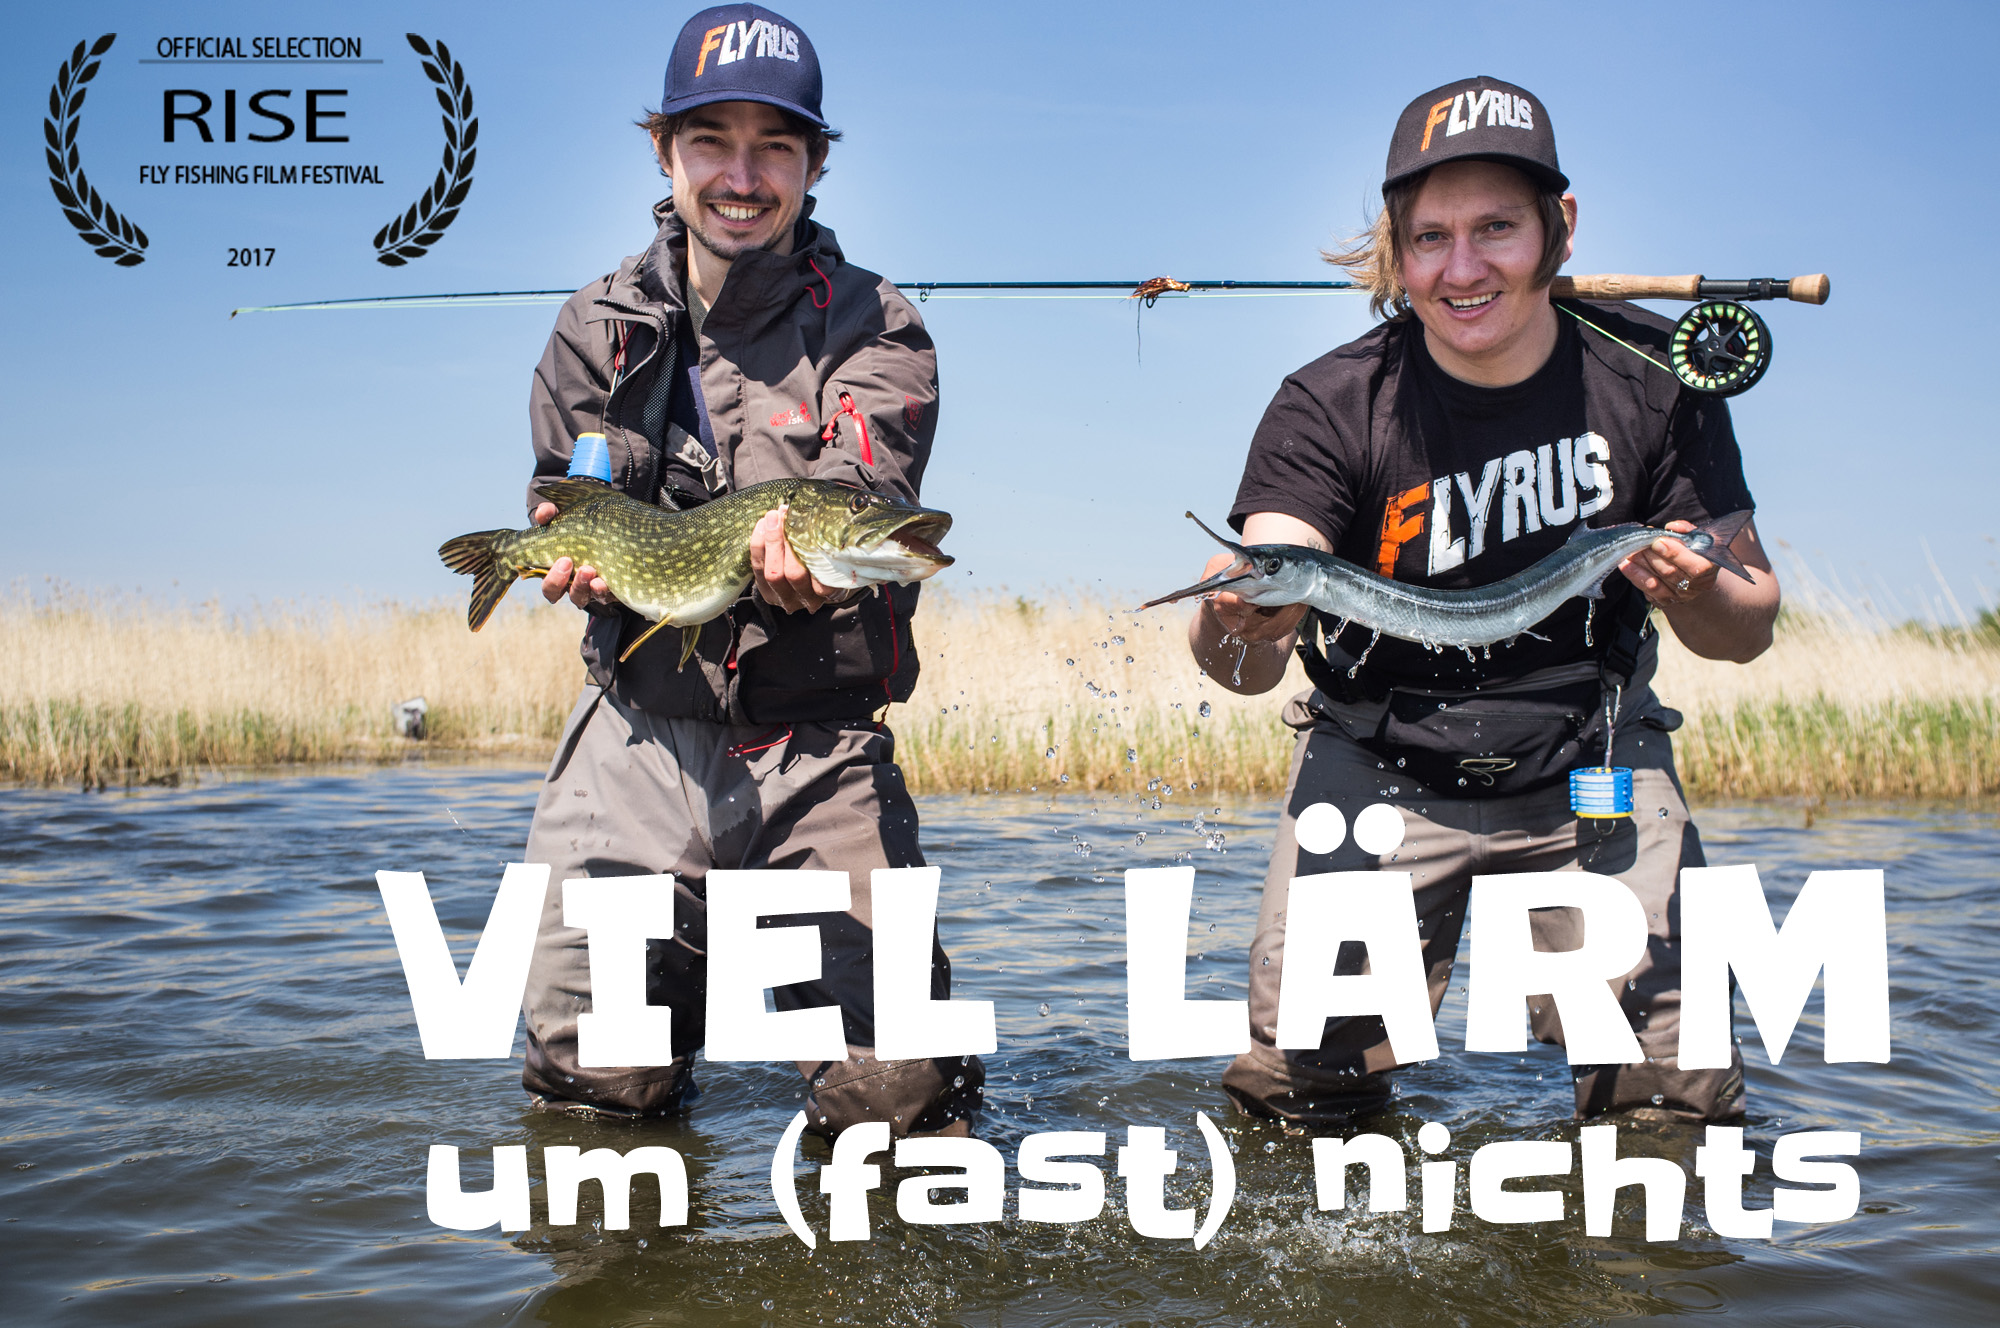 Flyrus at the rise fly fishing film festival flyrus for Fly fishing film festival